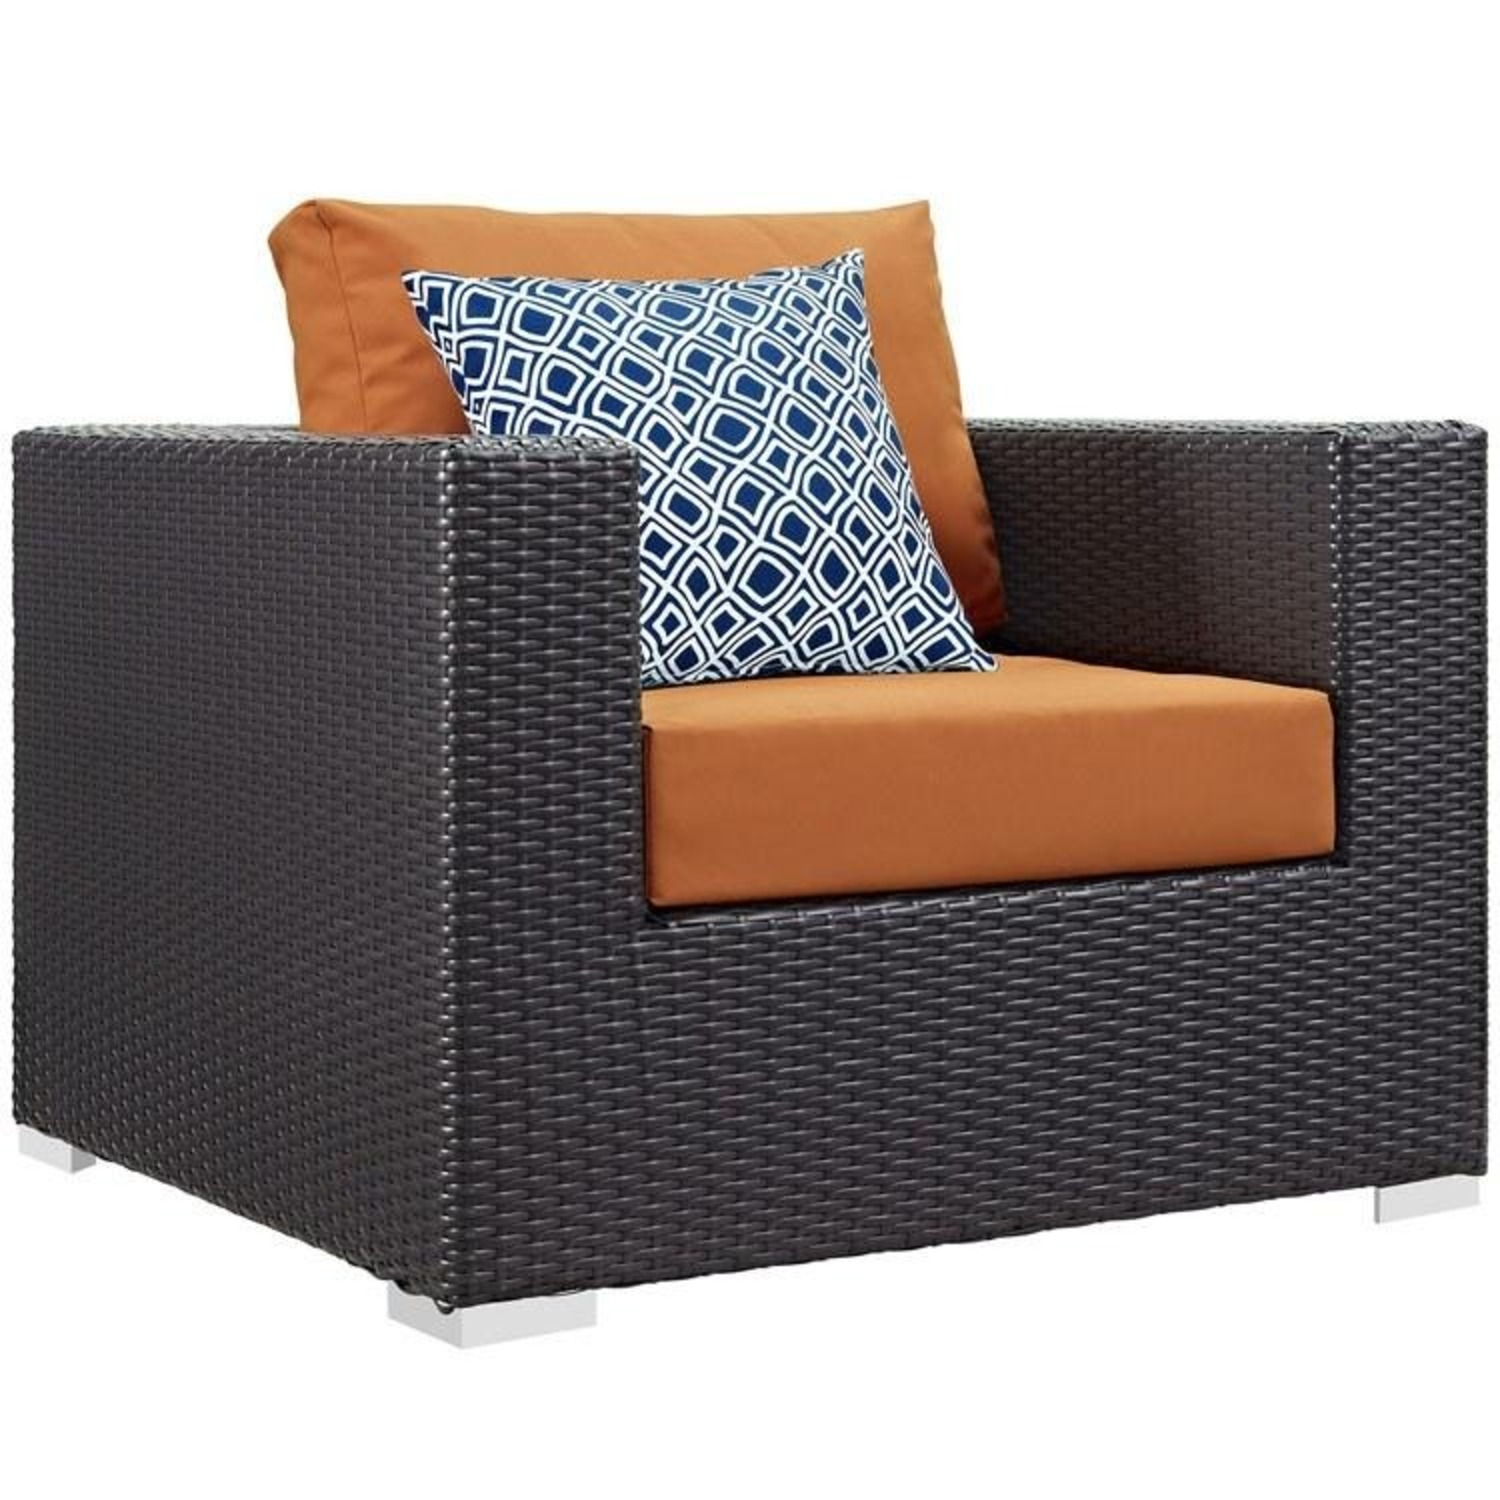 6-Piece Outdoor Sectional In Orange Fabric - image-1